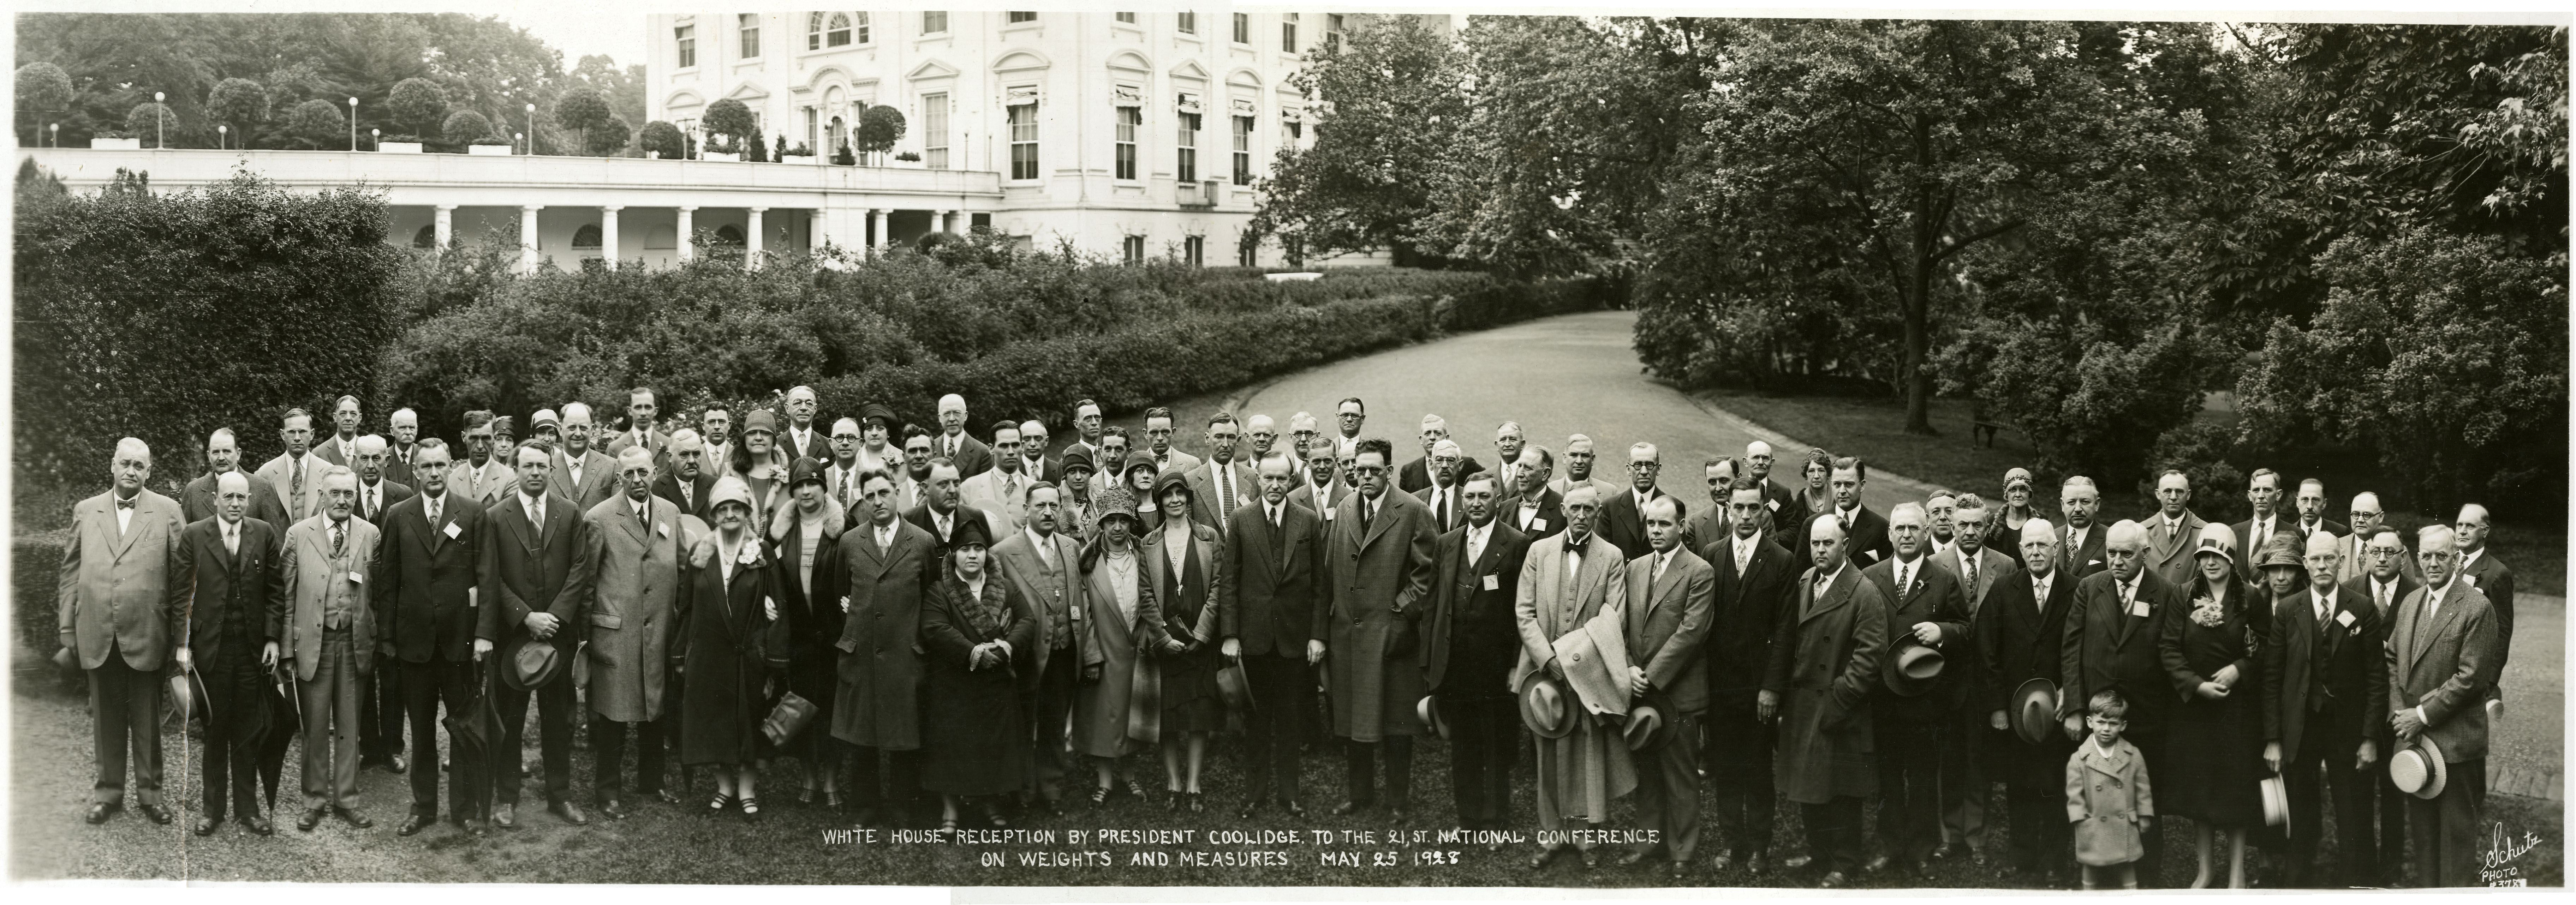 White House Reception by President Coolidge to the 21st National Conference on Weights and Measures